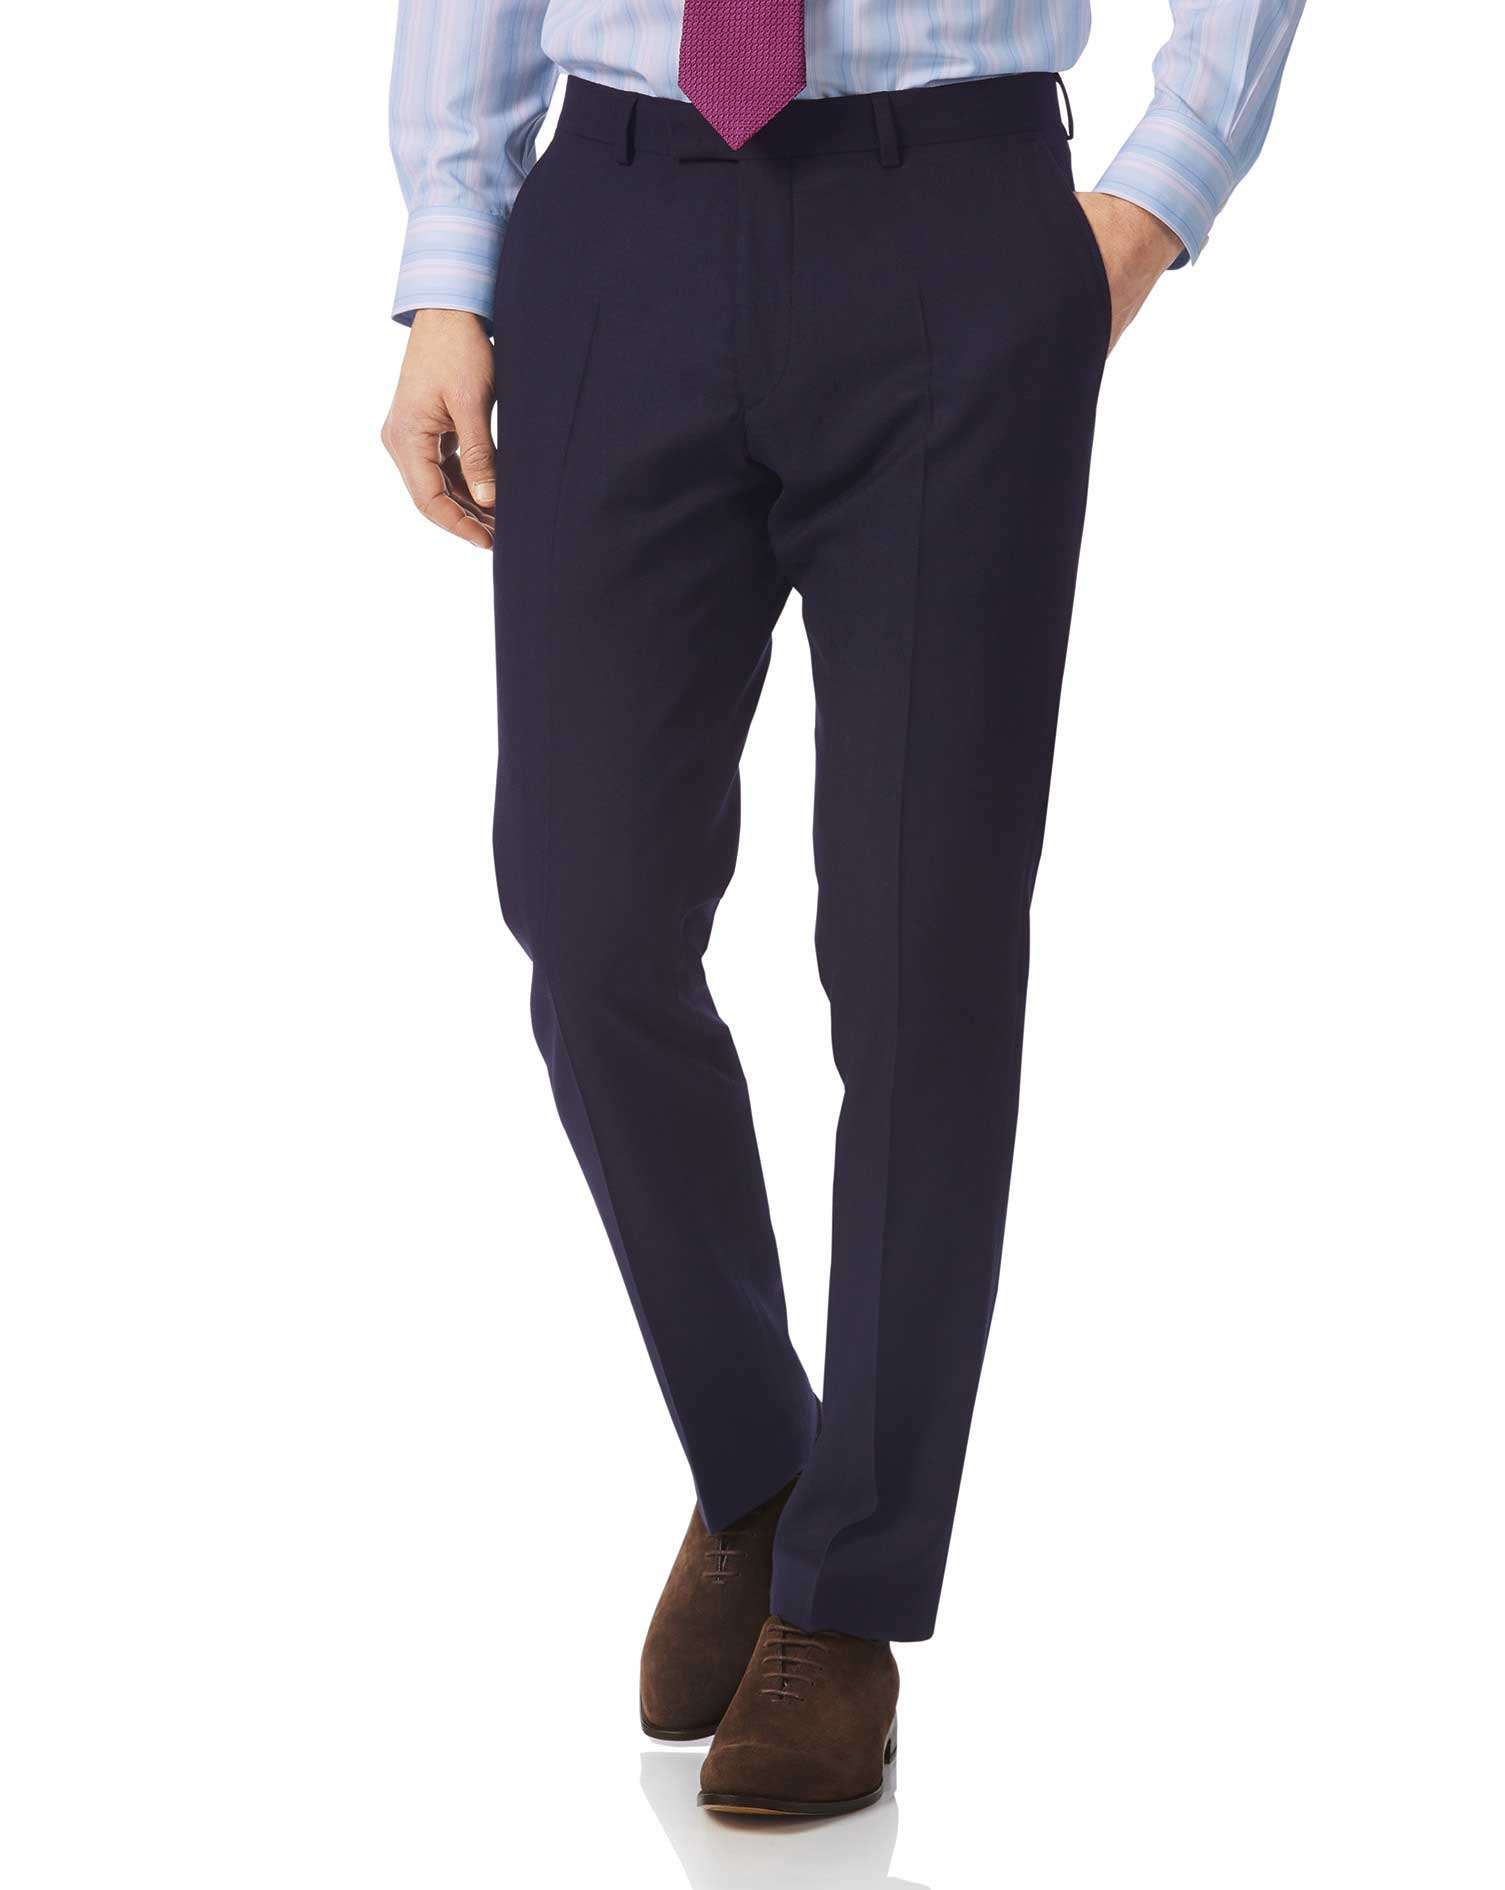 Navy Slim Fit British Luxury Suit Trousers Size W34 L30 by Charles Tyrwhitt